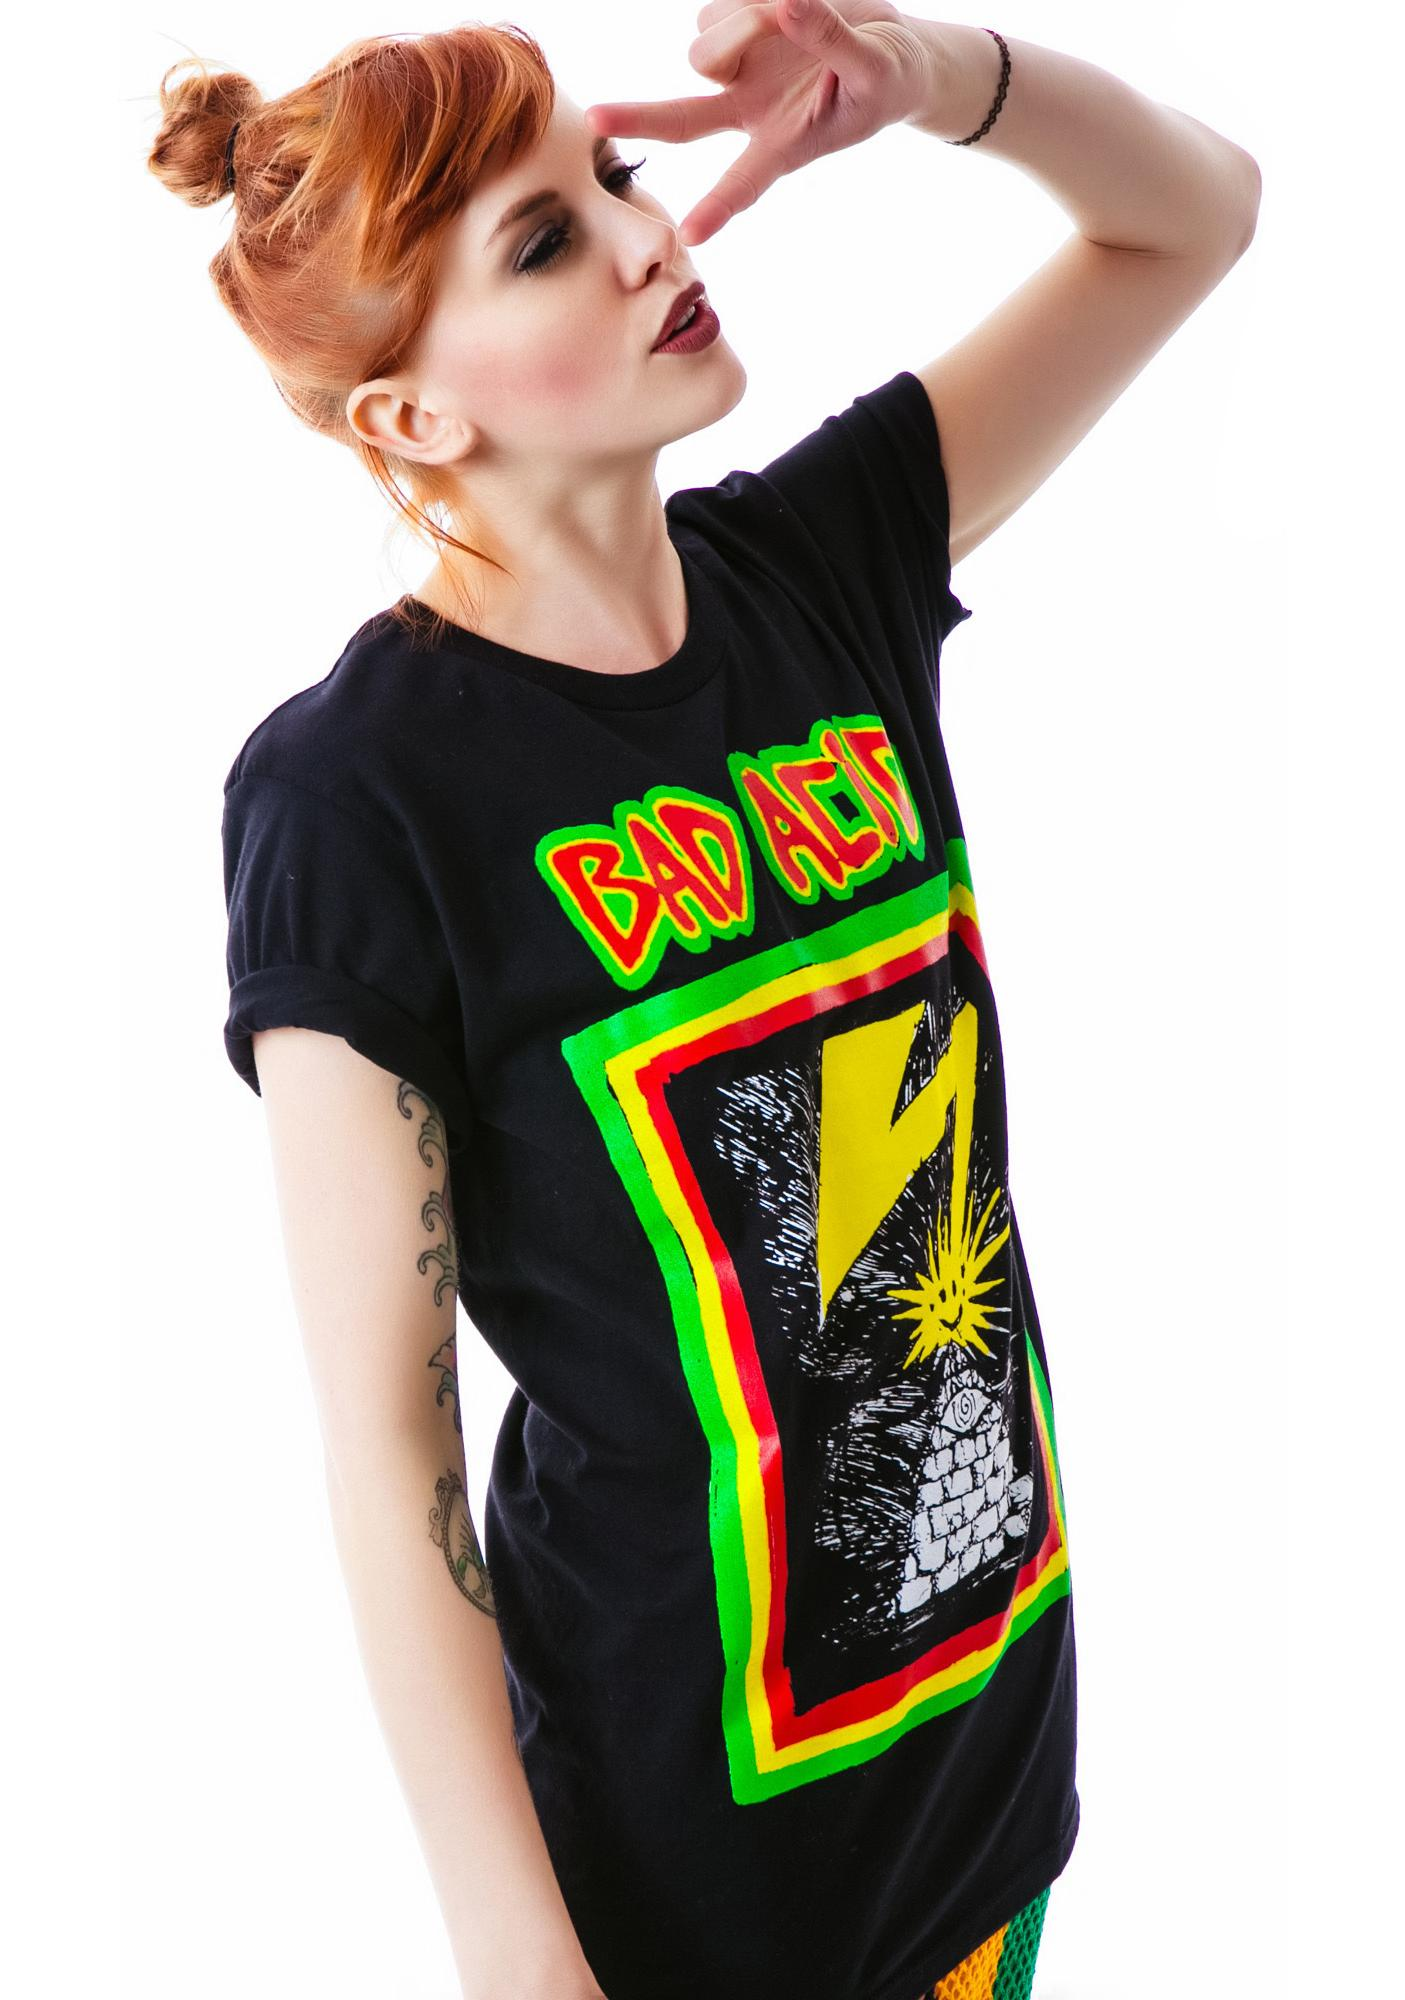 Bad Acid No Brains Tee